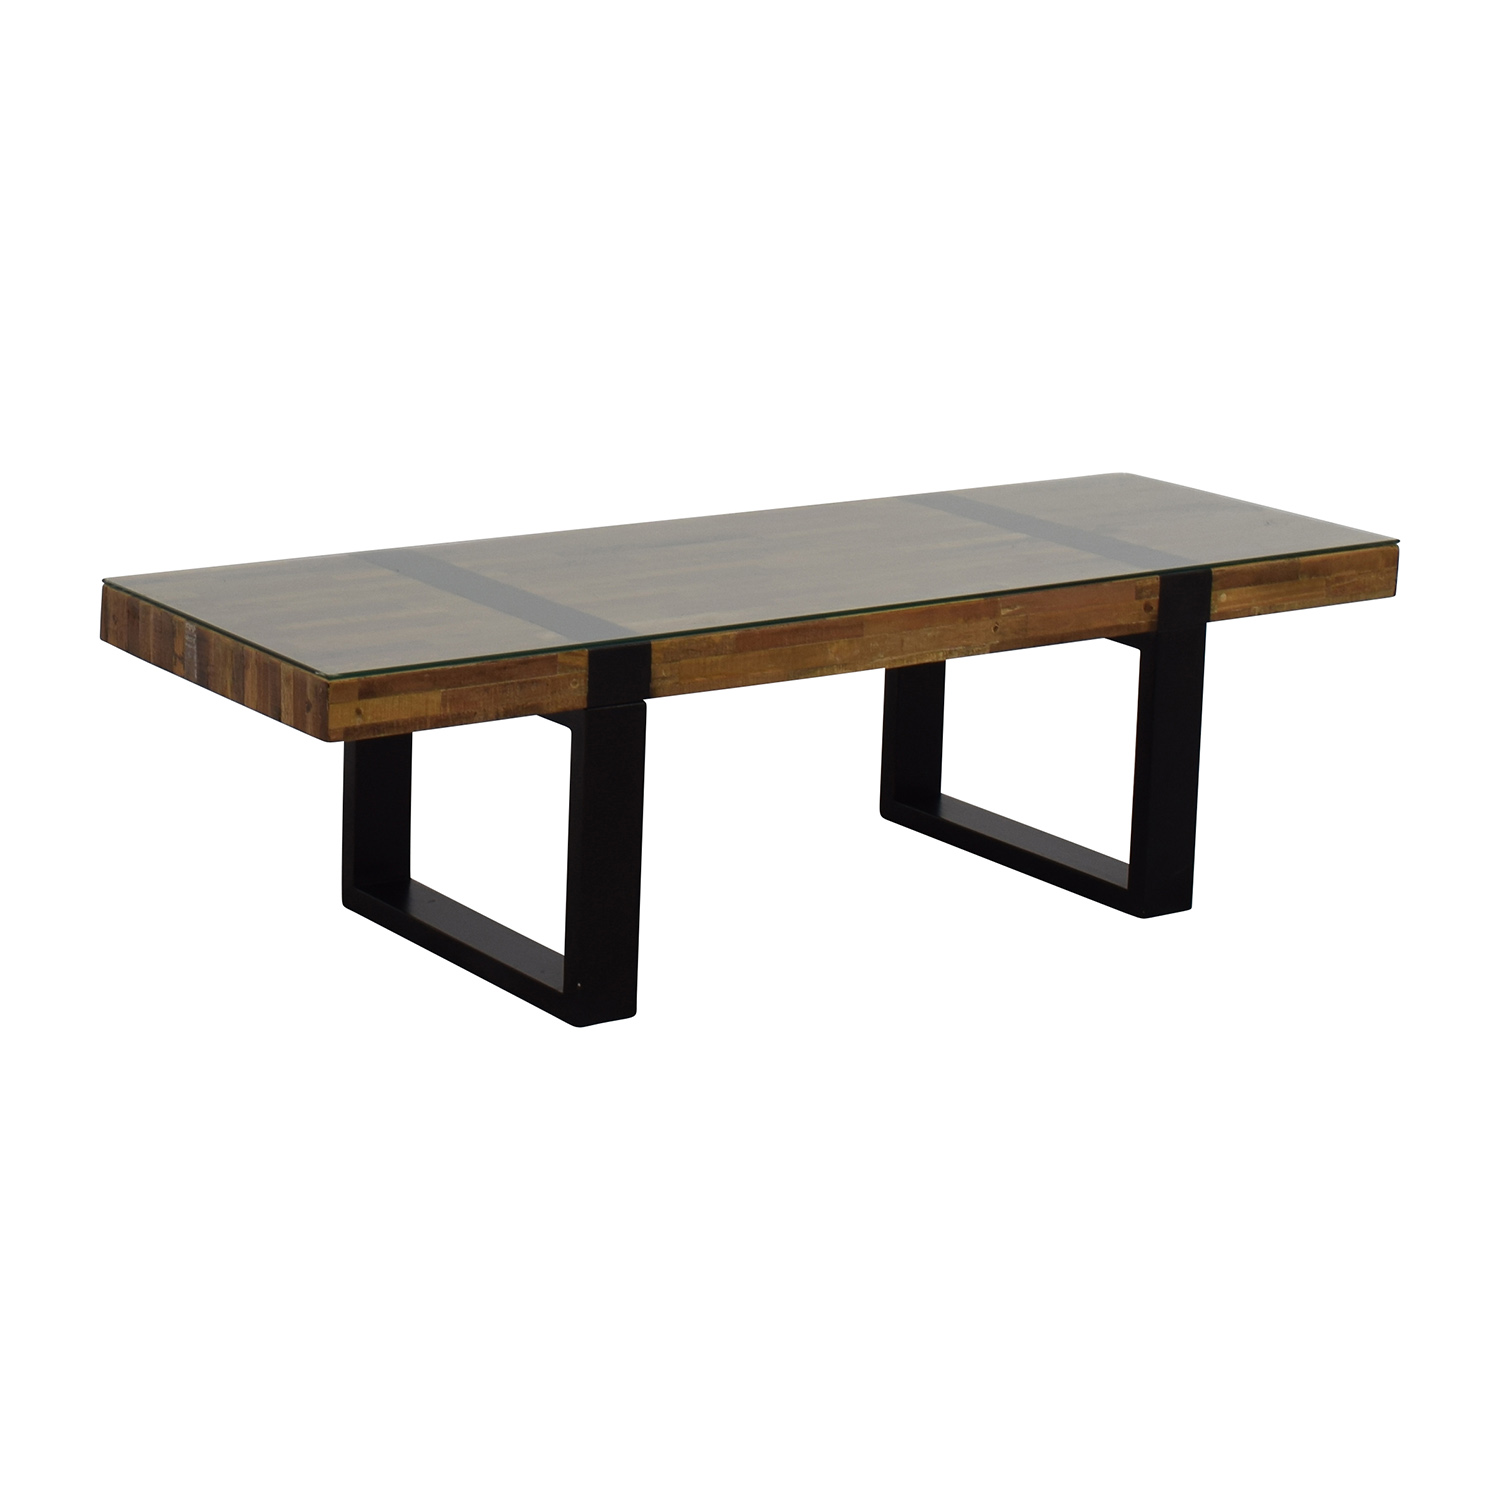 Crate barrel crate barrel seguro rectangular coffee table